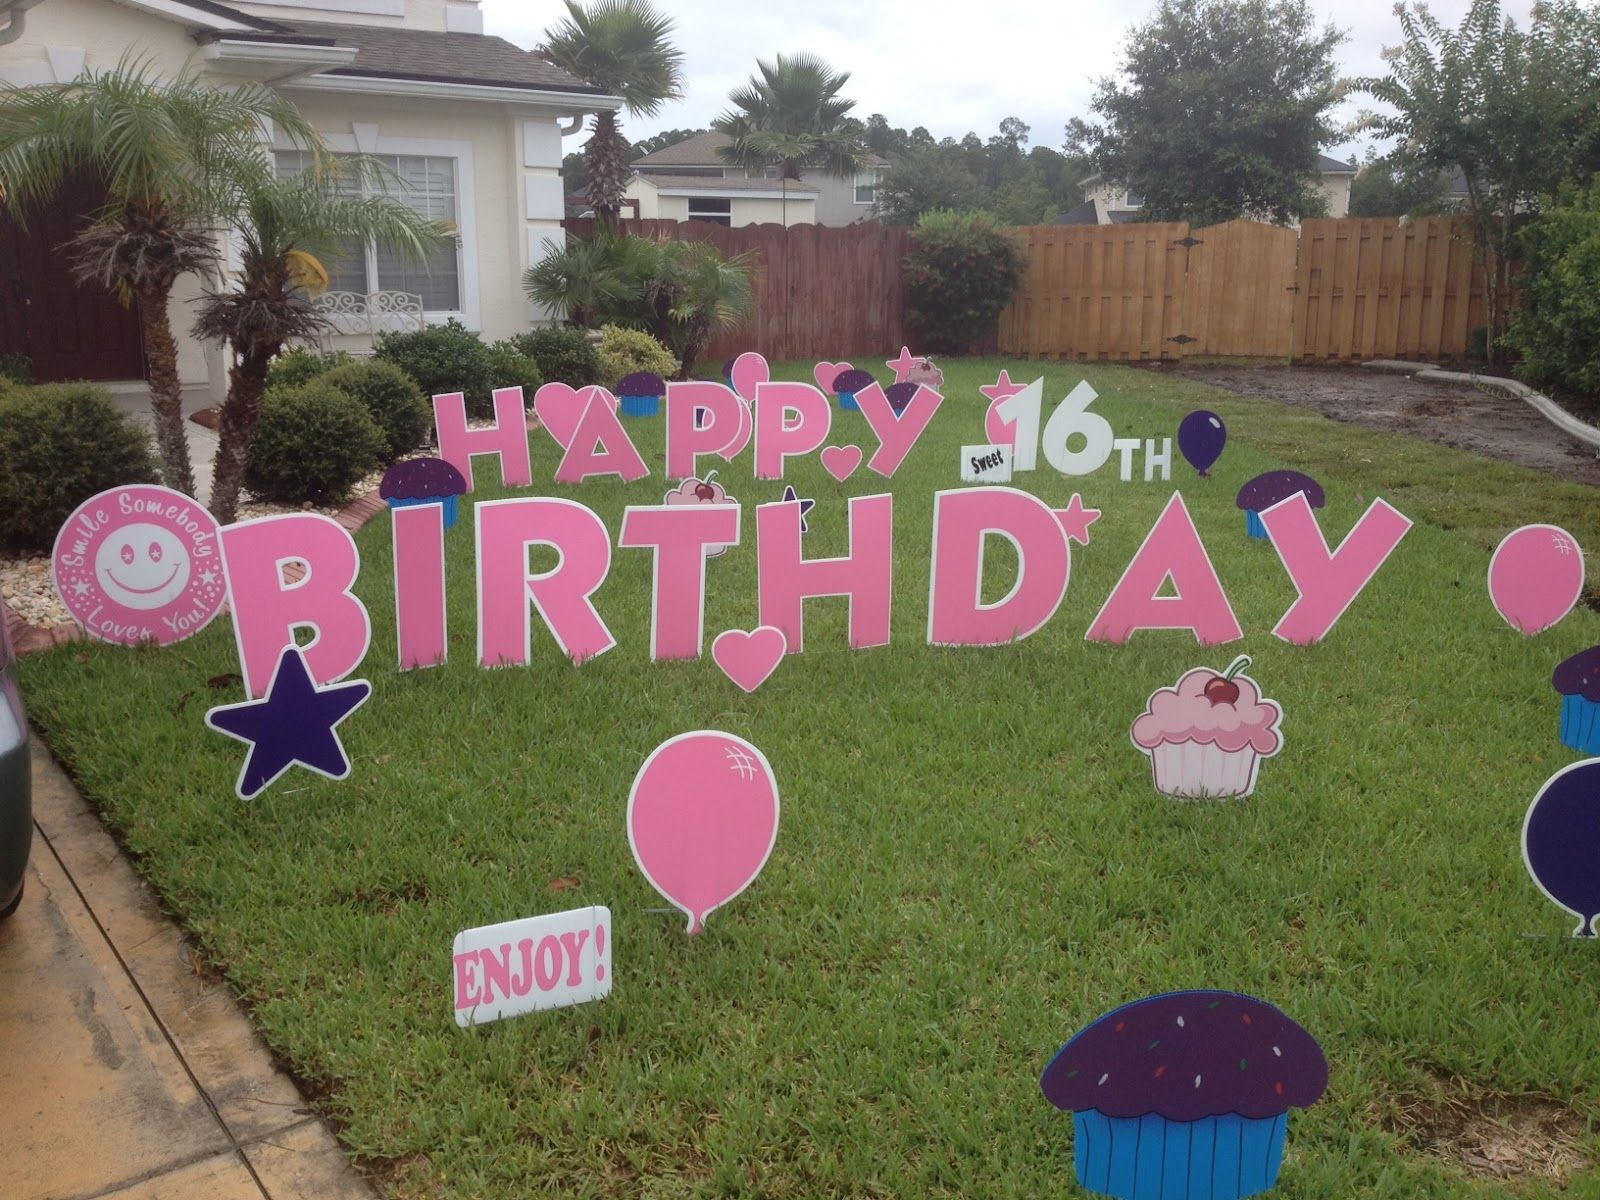 birthday cake yard sign Posted by Big Yard Card at 239 PM HaPpY